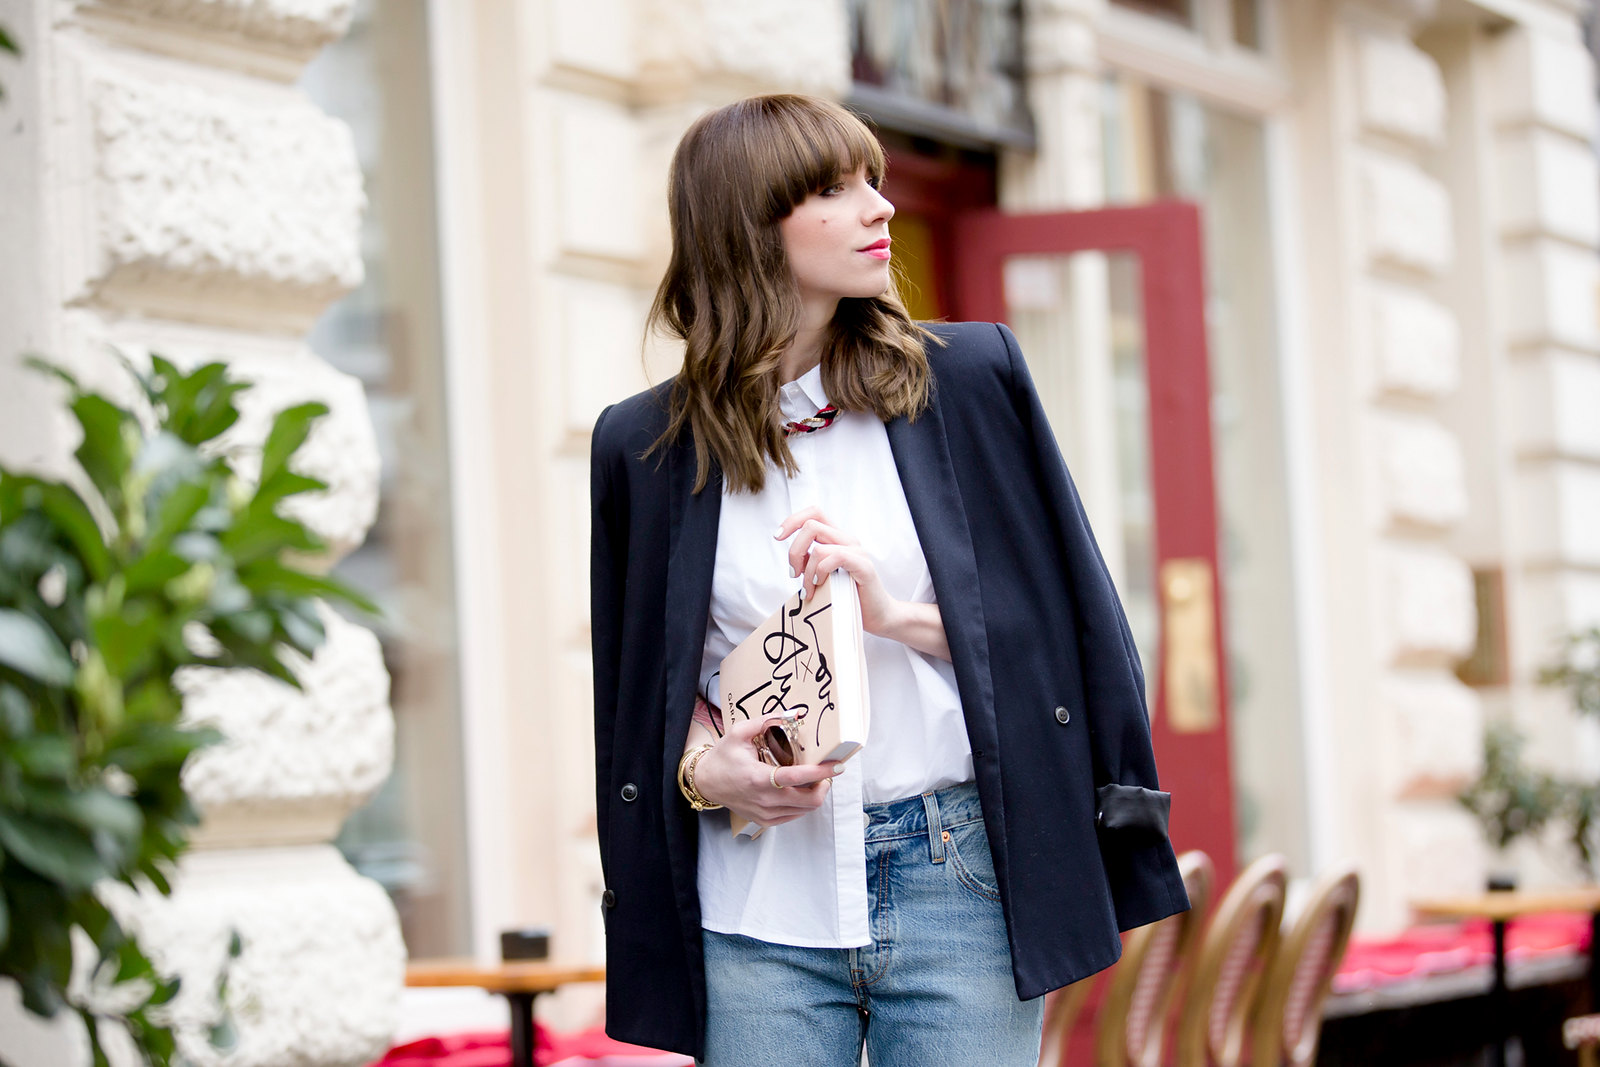 black blazer levi's 501 denim jeans nude pumps garance dore book parisienne french style blogger fashionblogger ootd outfit bangs brunette paris cute girl cats & dogs fashionblog ricarda schernus shopbop sale 3